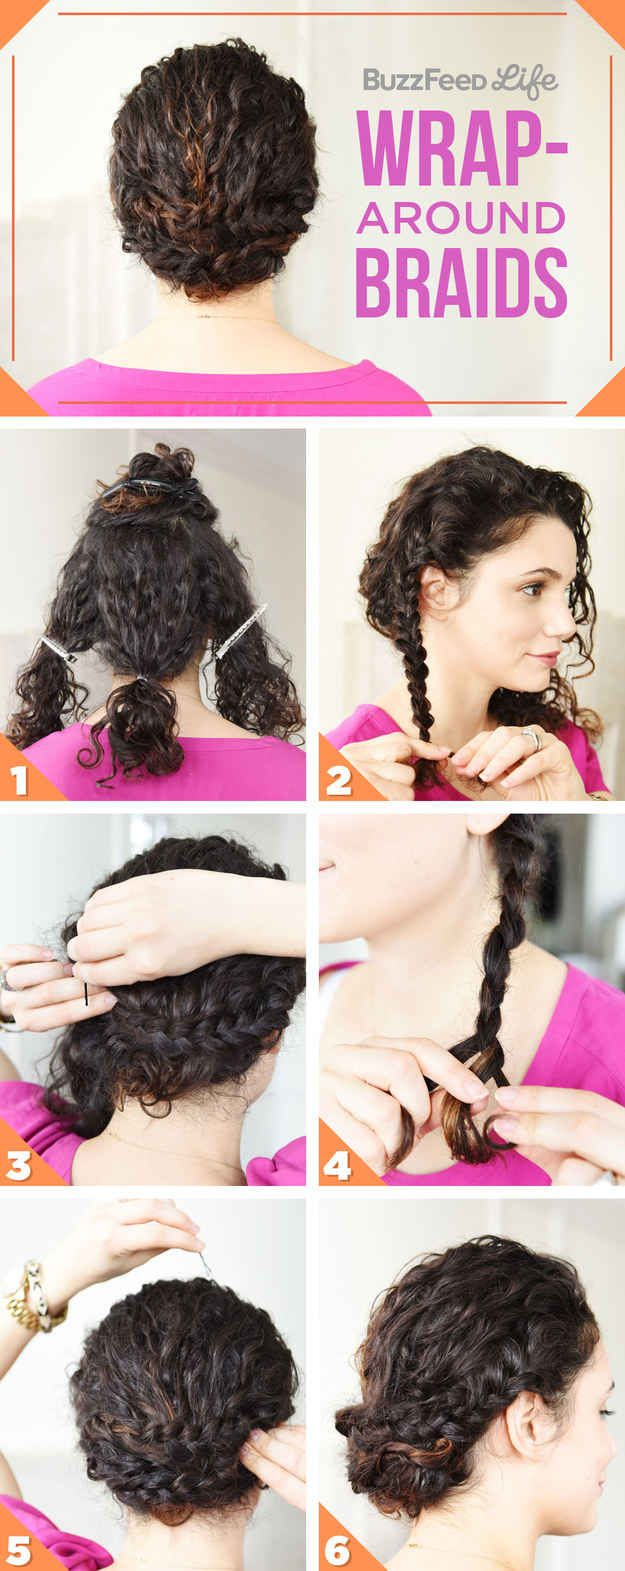 Easy up dos for curly hair. Most of these I could actually see myself doing succ...